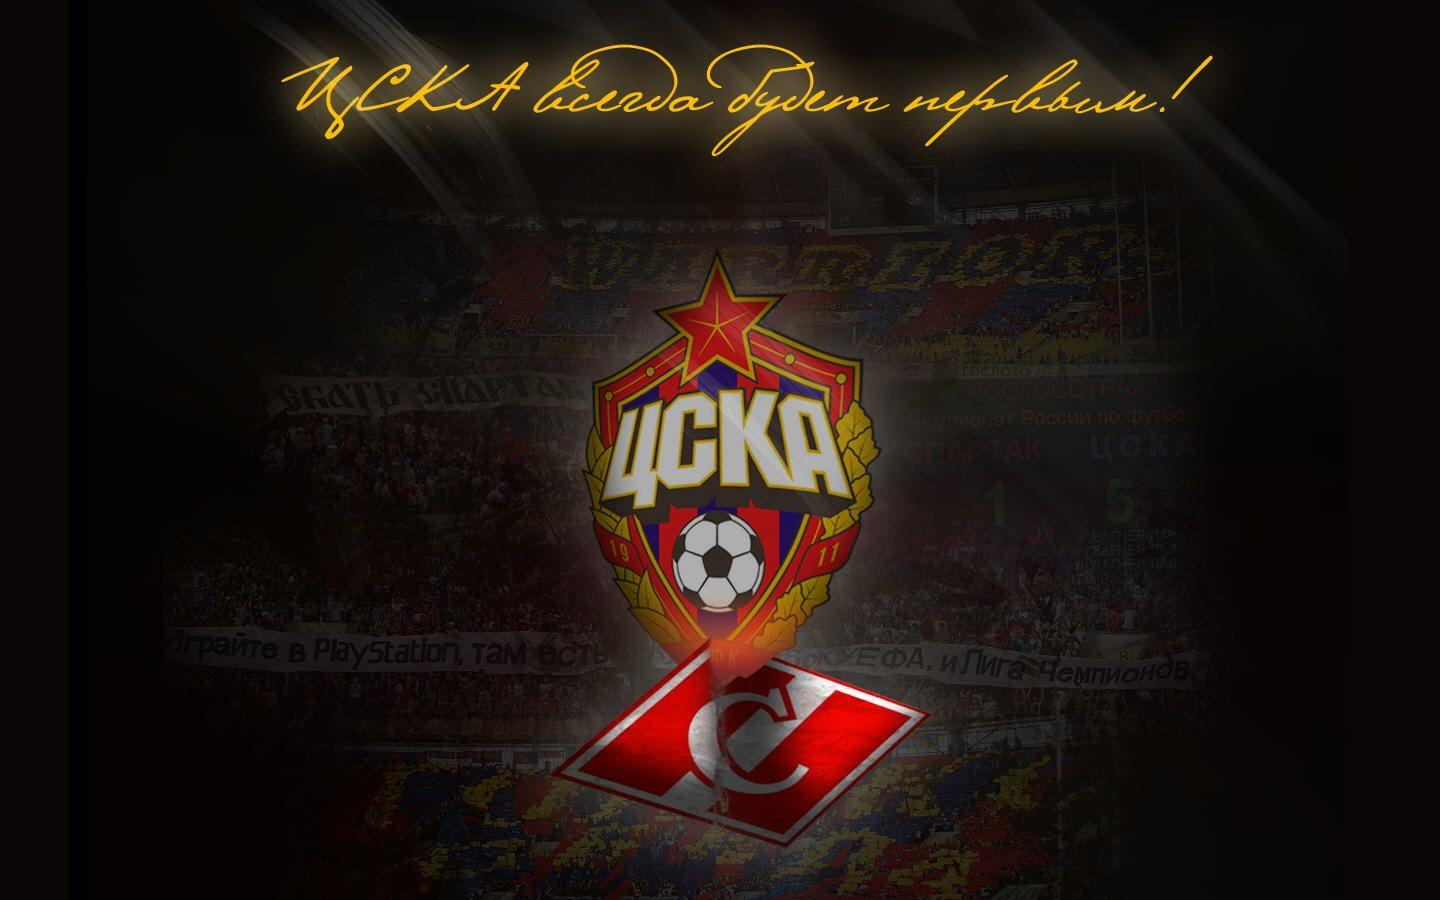 Cska Moscow wallpapers wallpaper, Football Pictures and Photos